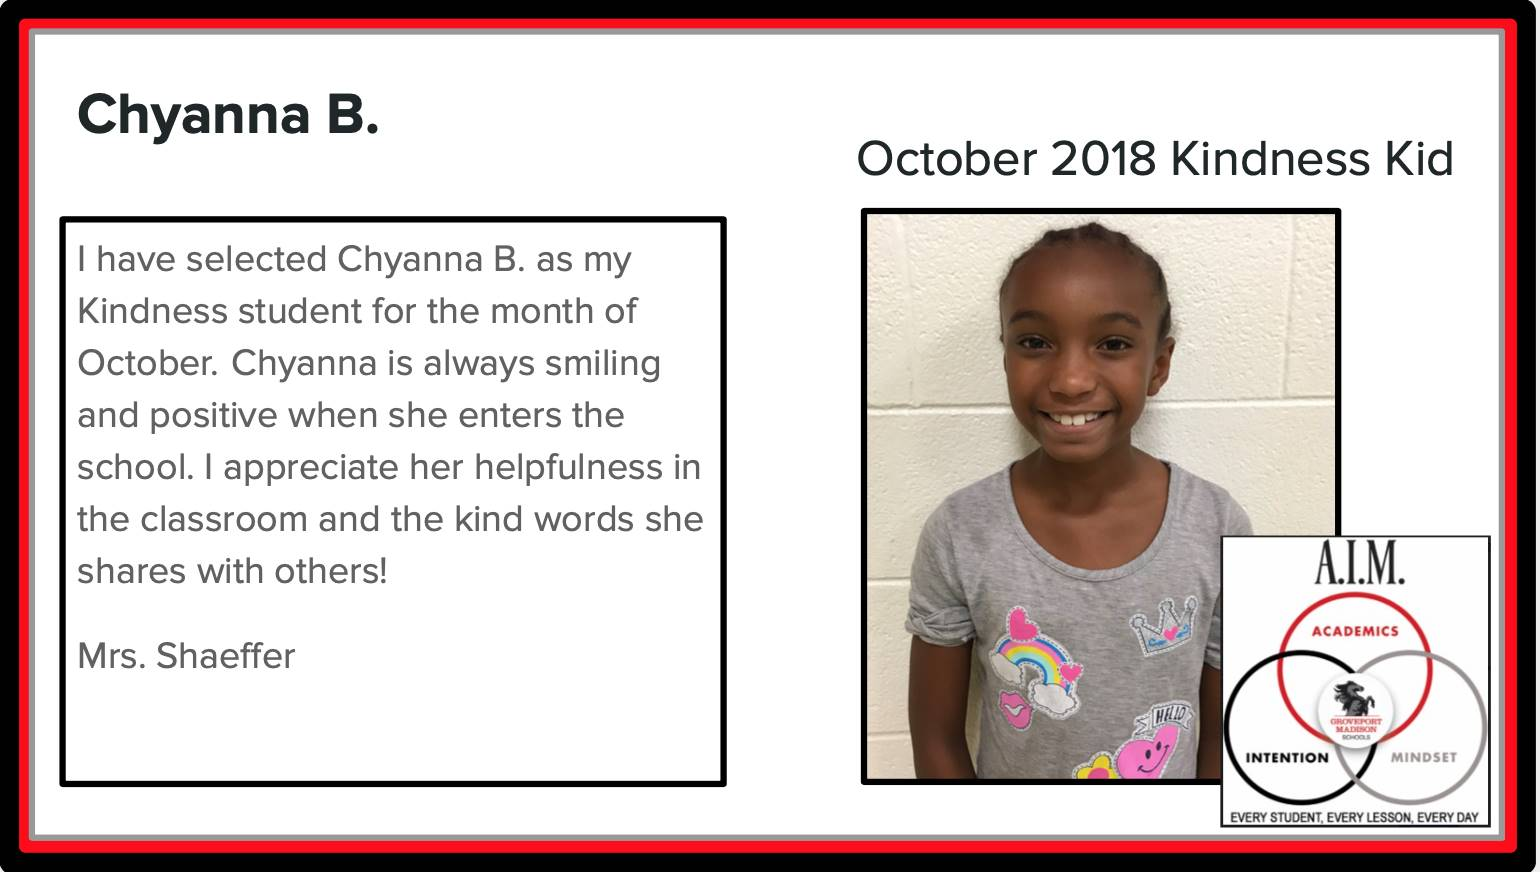 Kindness Kid Chyanna